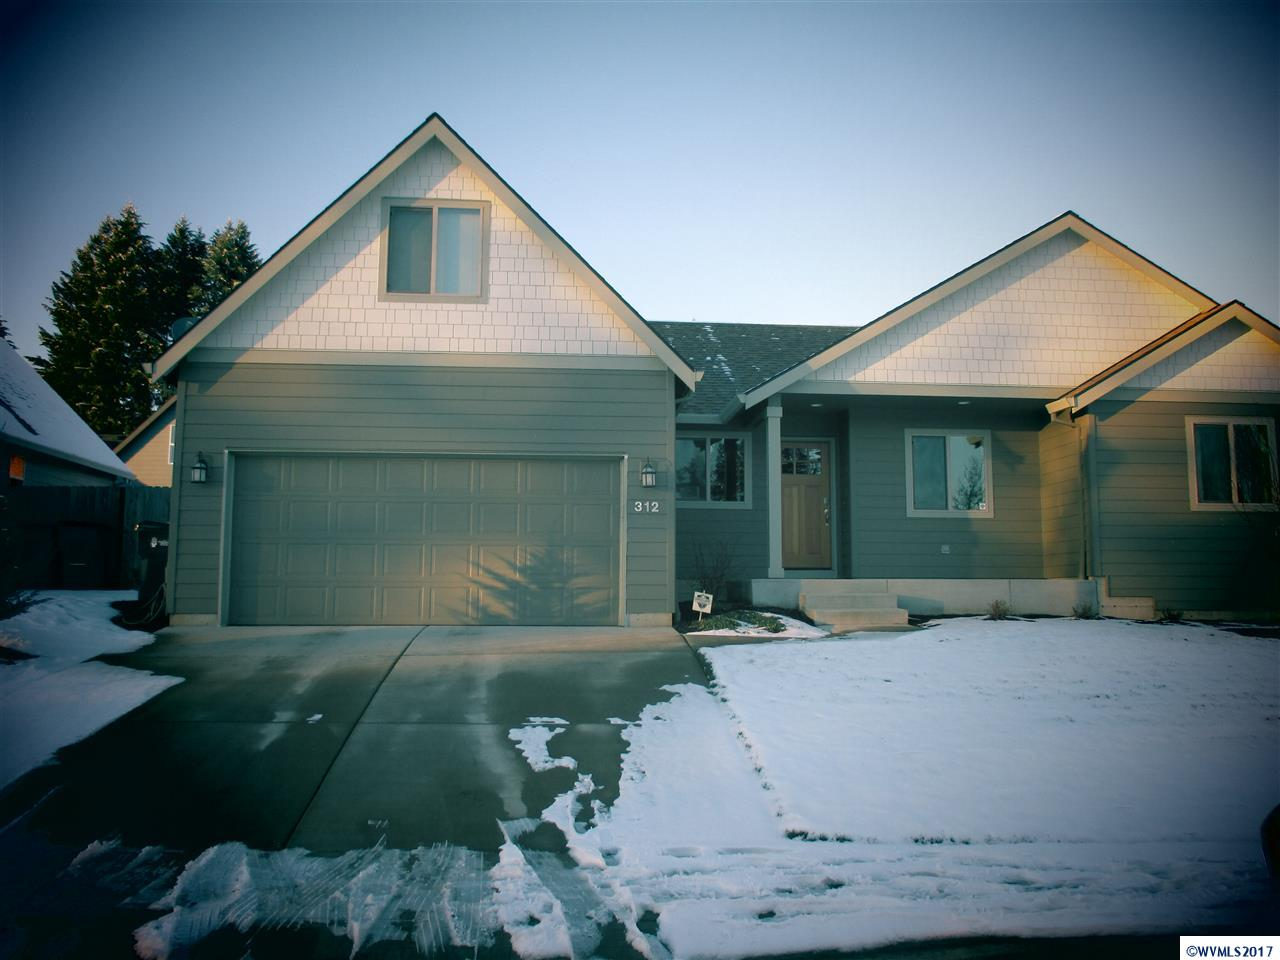 312 Nw Pacific Hills Willamina, OR 97396